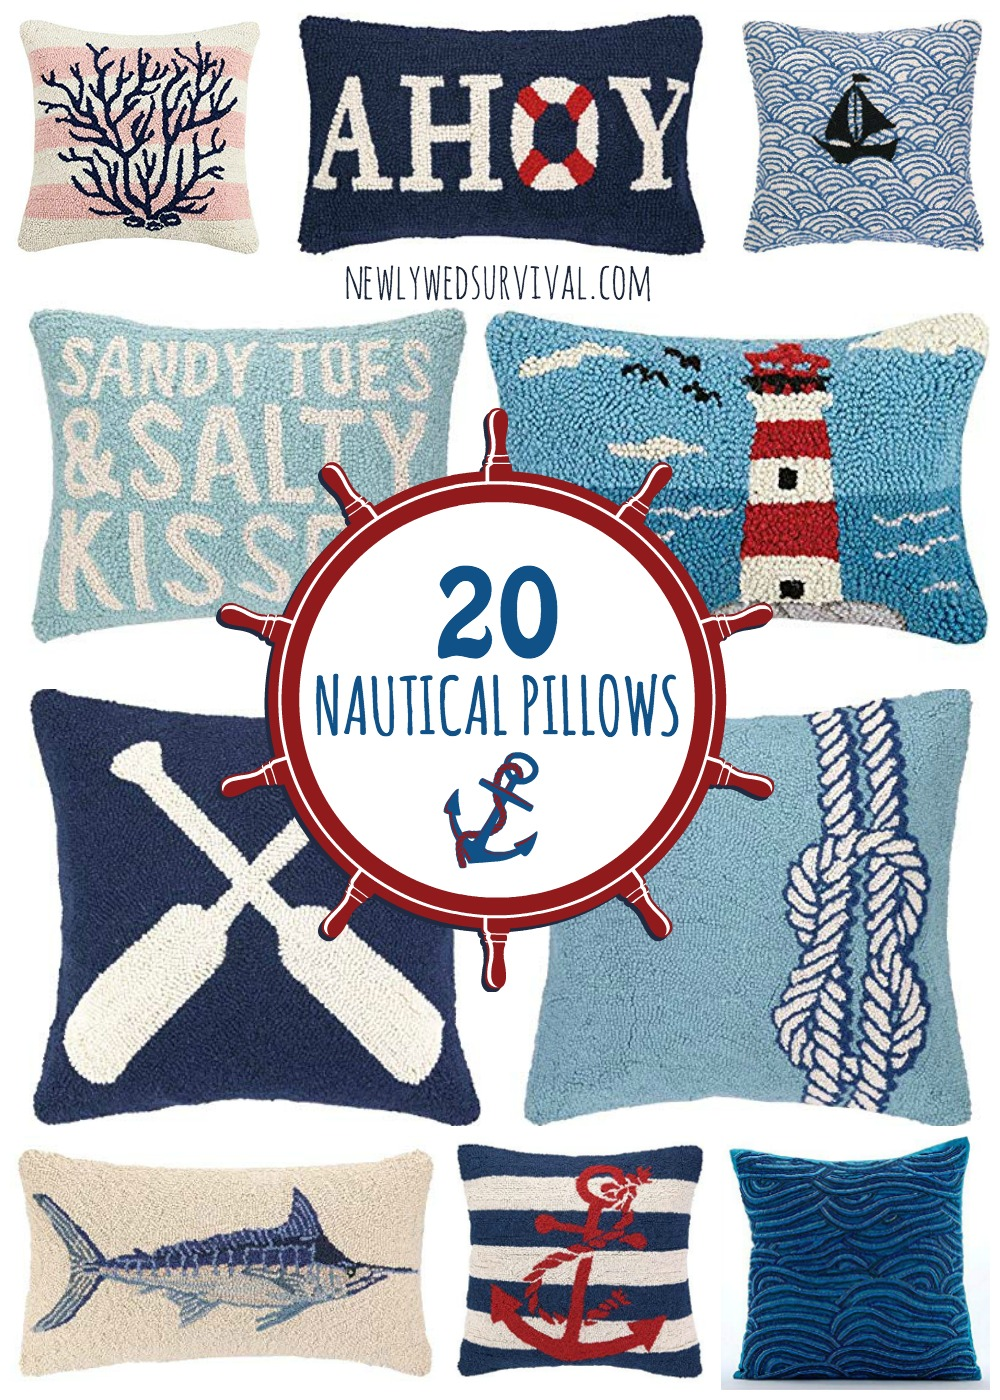 Nautical Sofa Throws 20 Nautical Throw Pillows Newlywed Survival